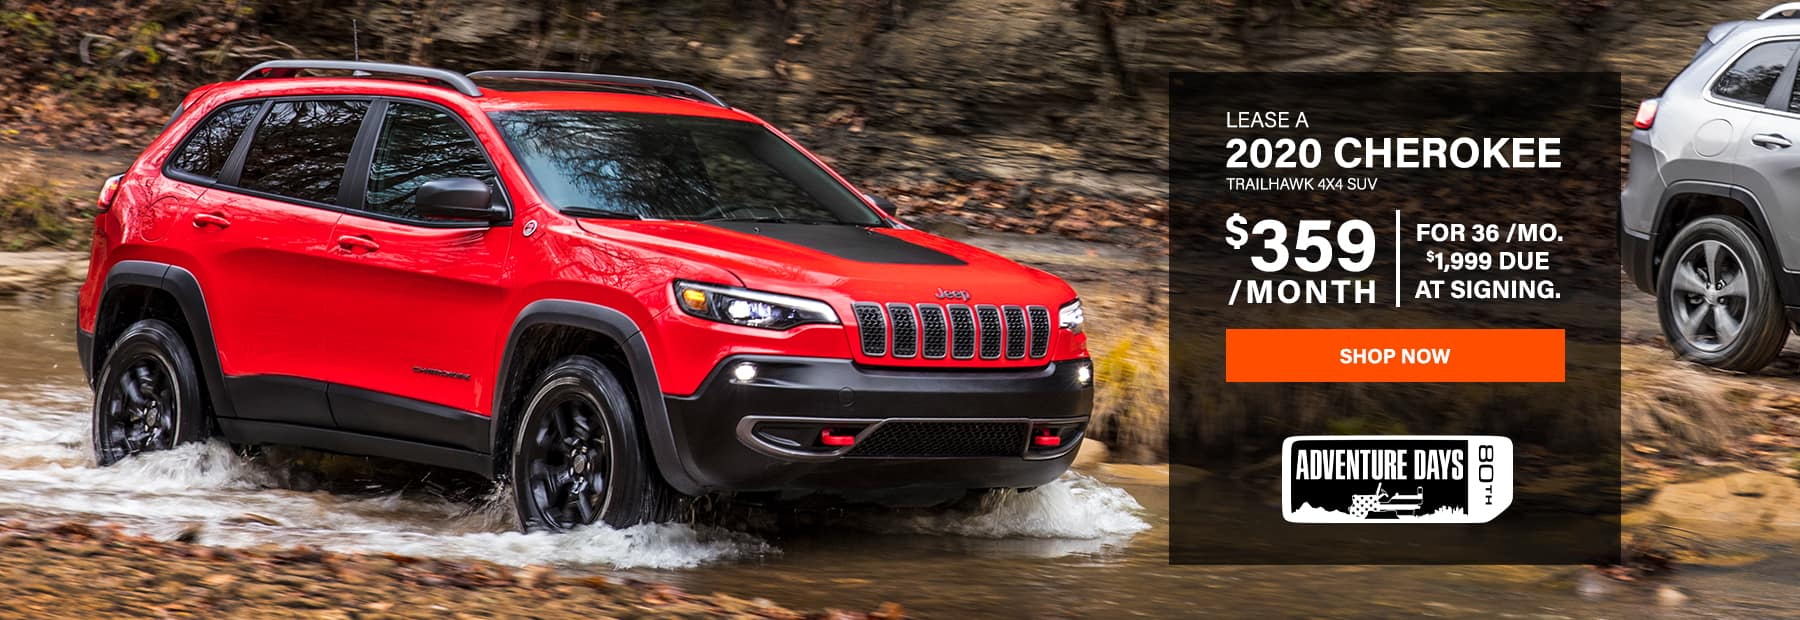 Lease a 2020 Jeep Cherokee Trailhawk 4x4 SUV for $359/mo. for 36 mos. with $1,999 down